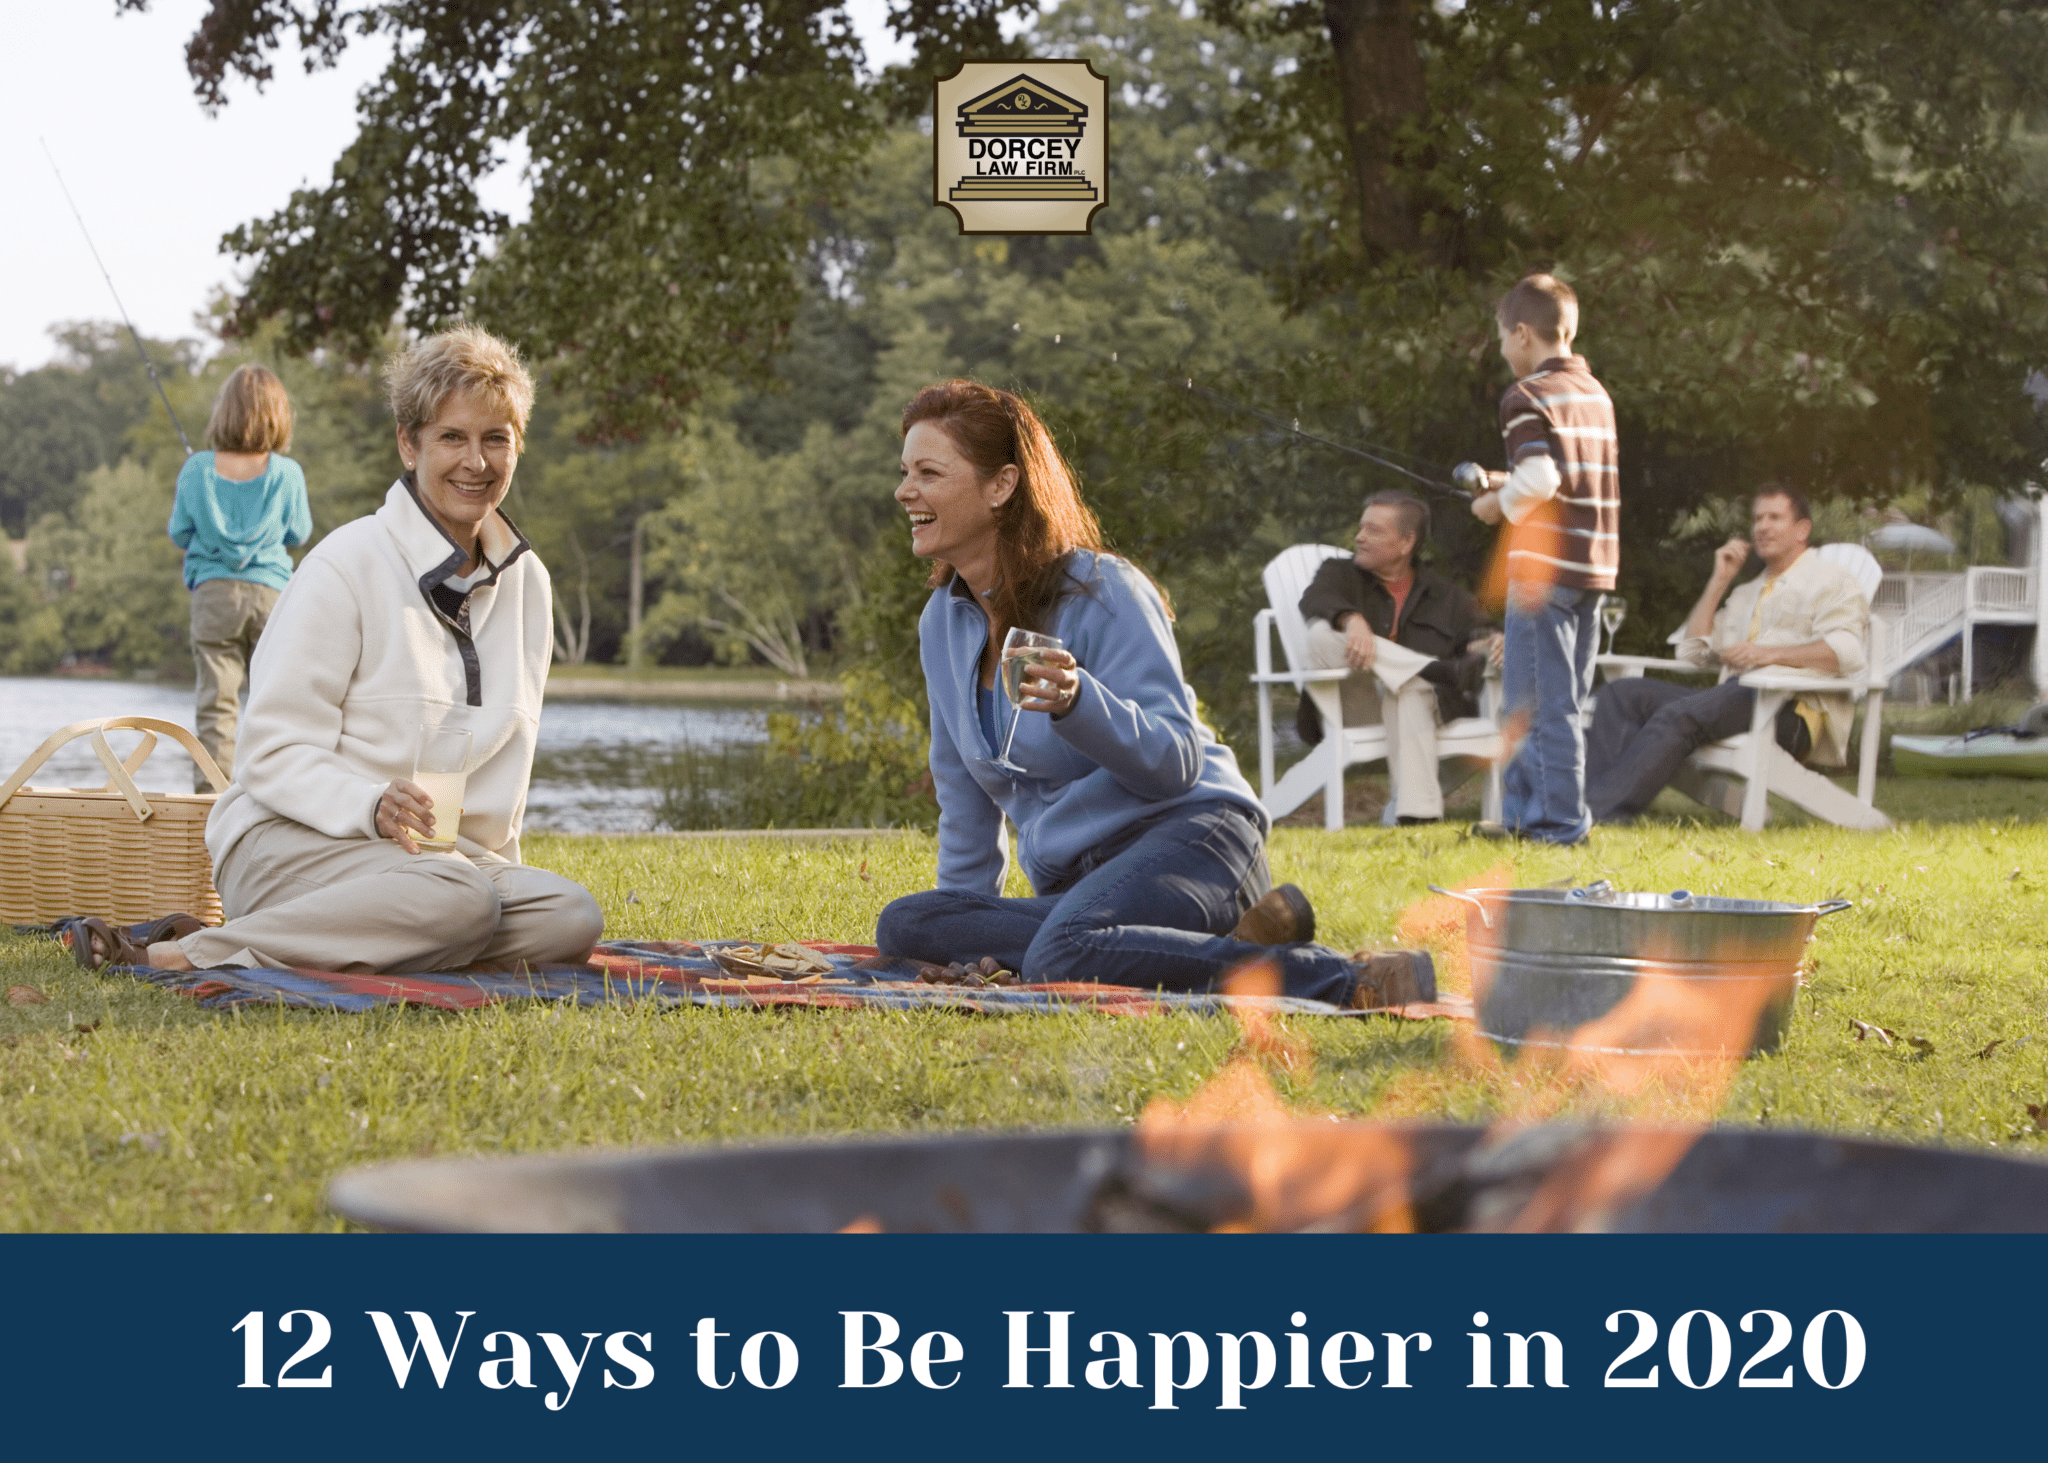 12 Ways to Be Happier in 2020